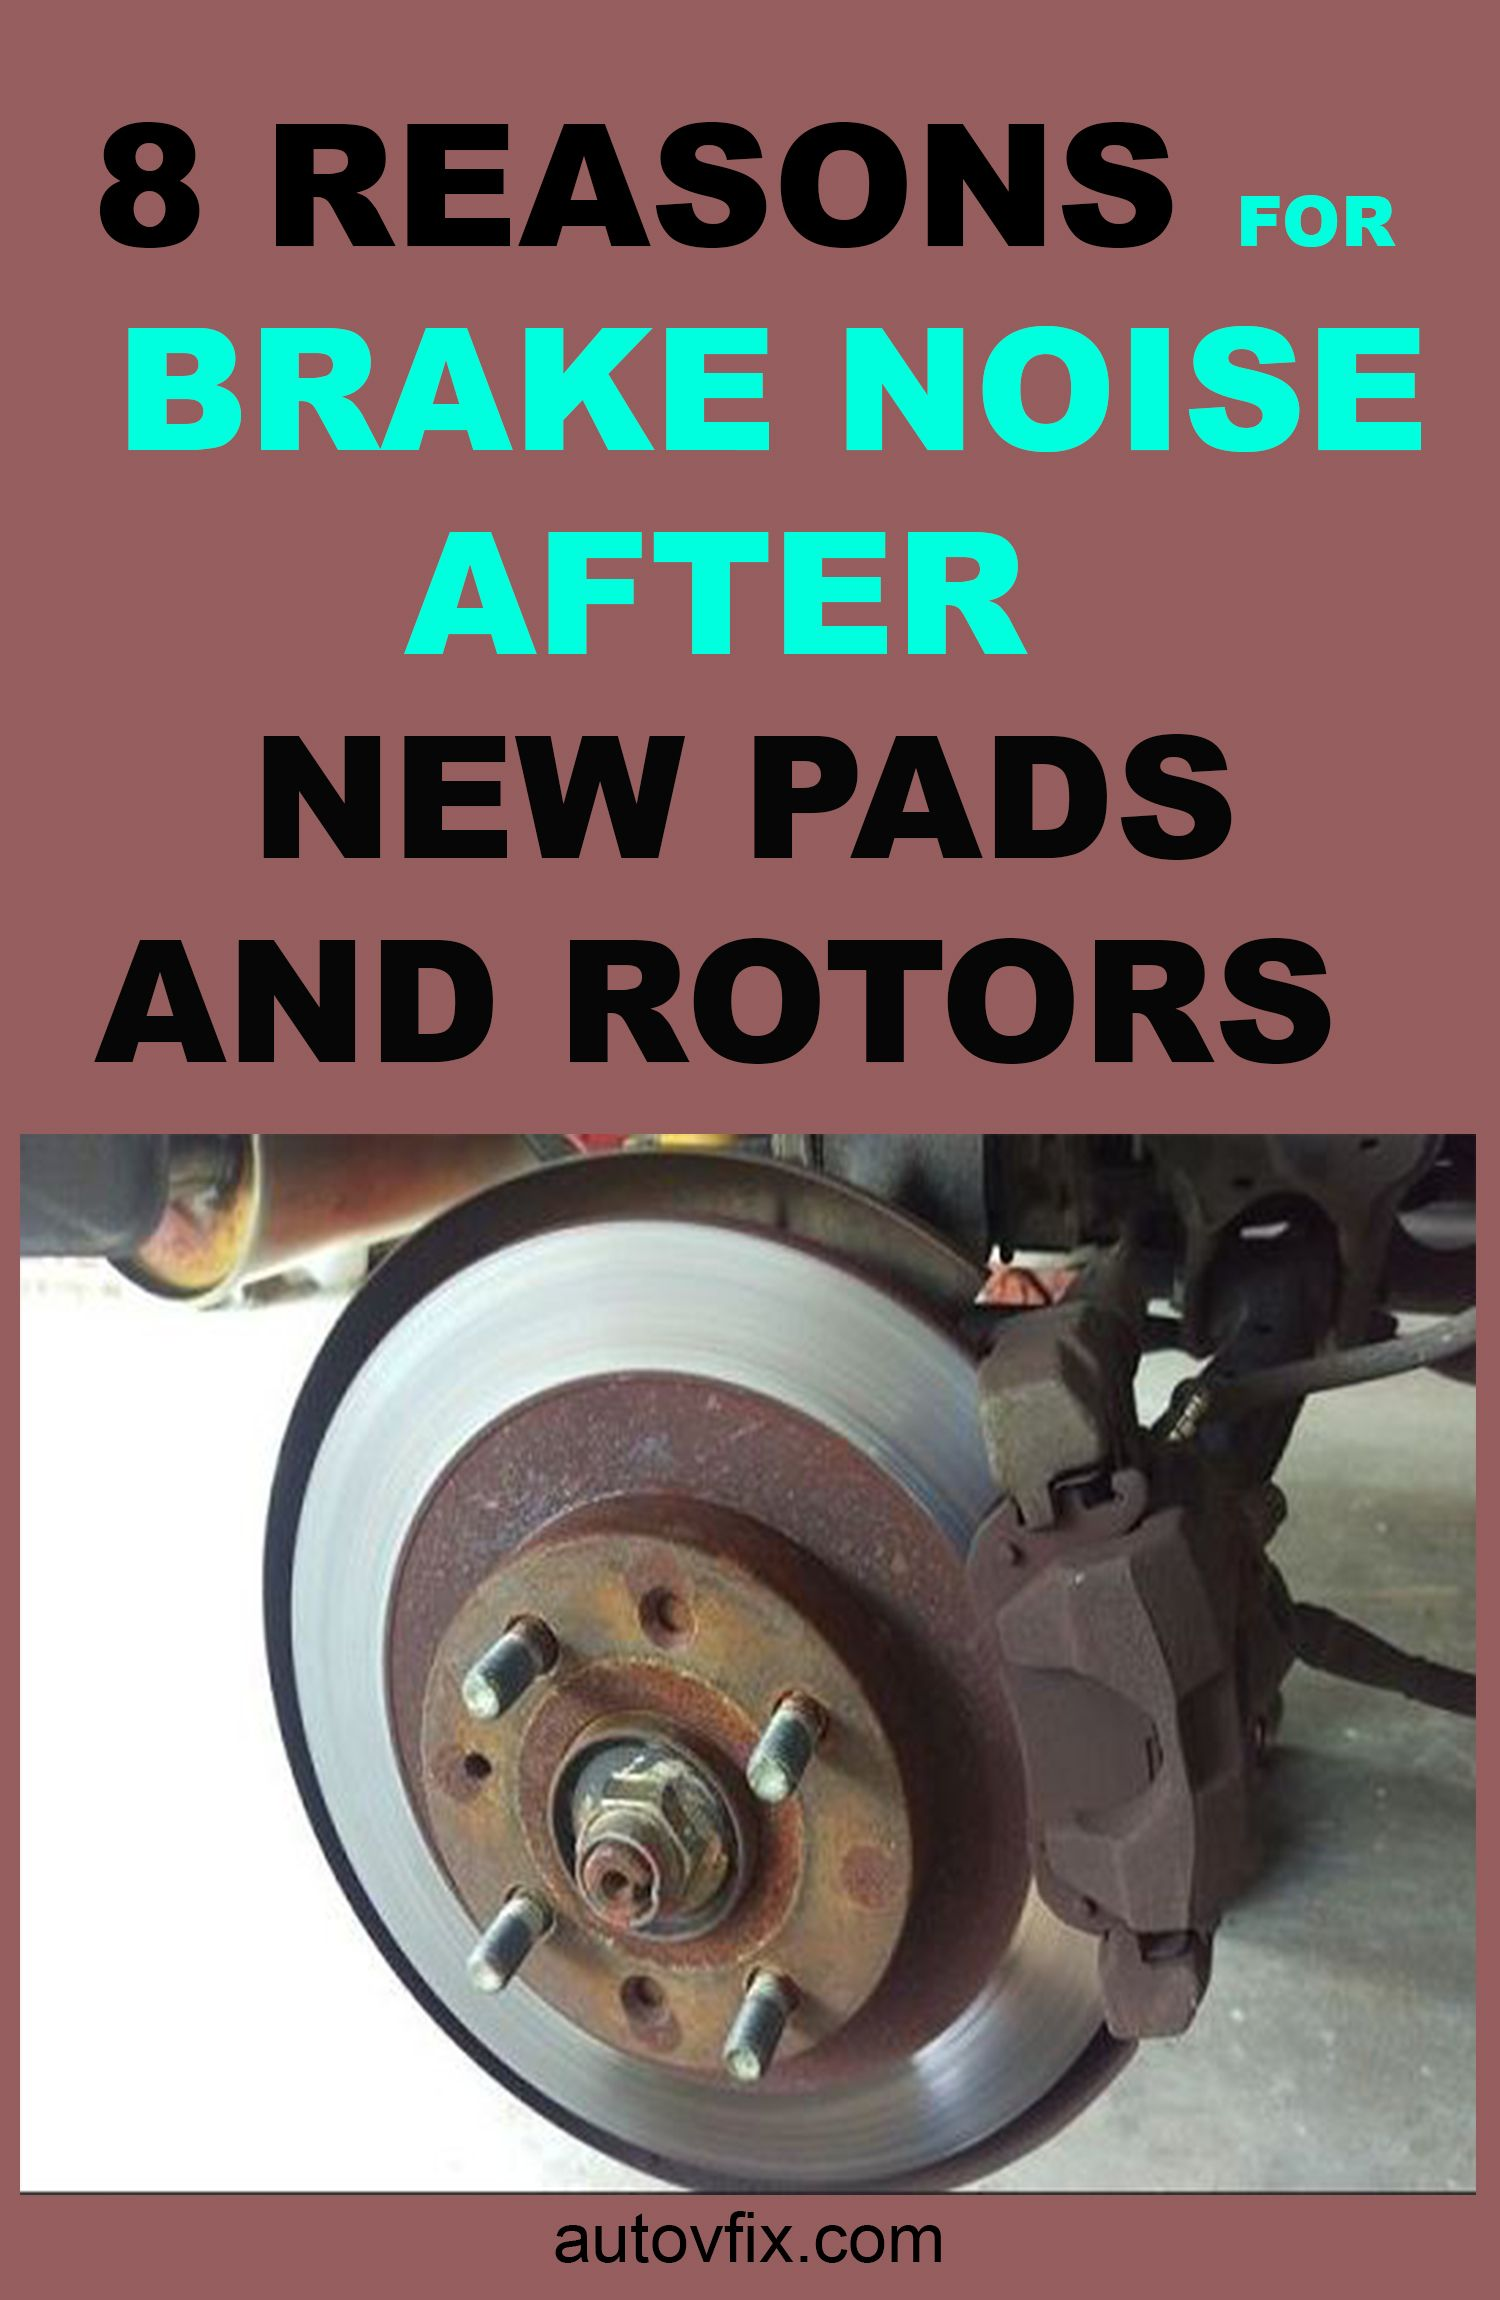 8 reasons for brake noise after new pads and rotors in